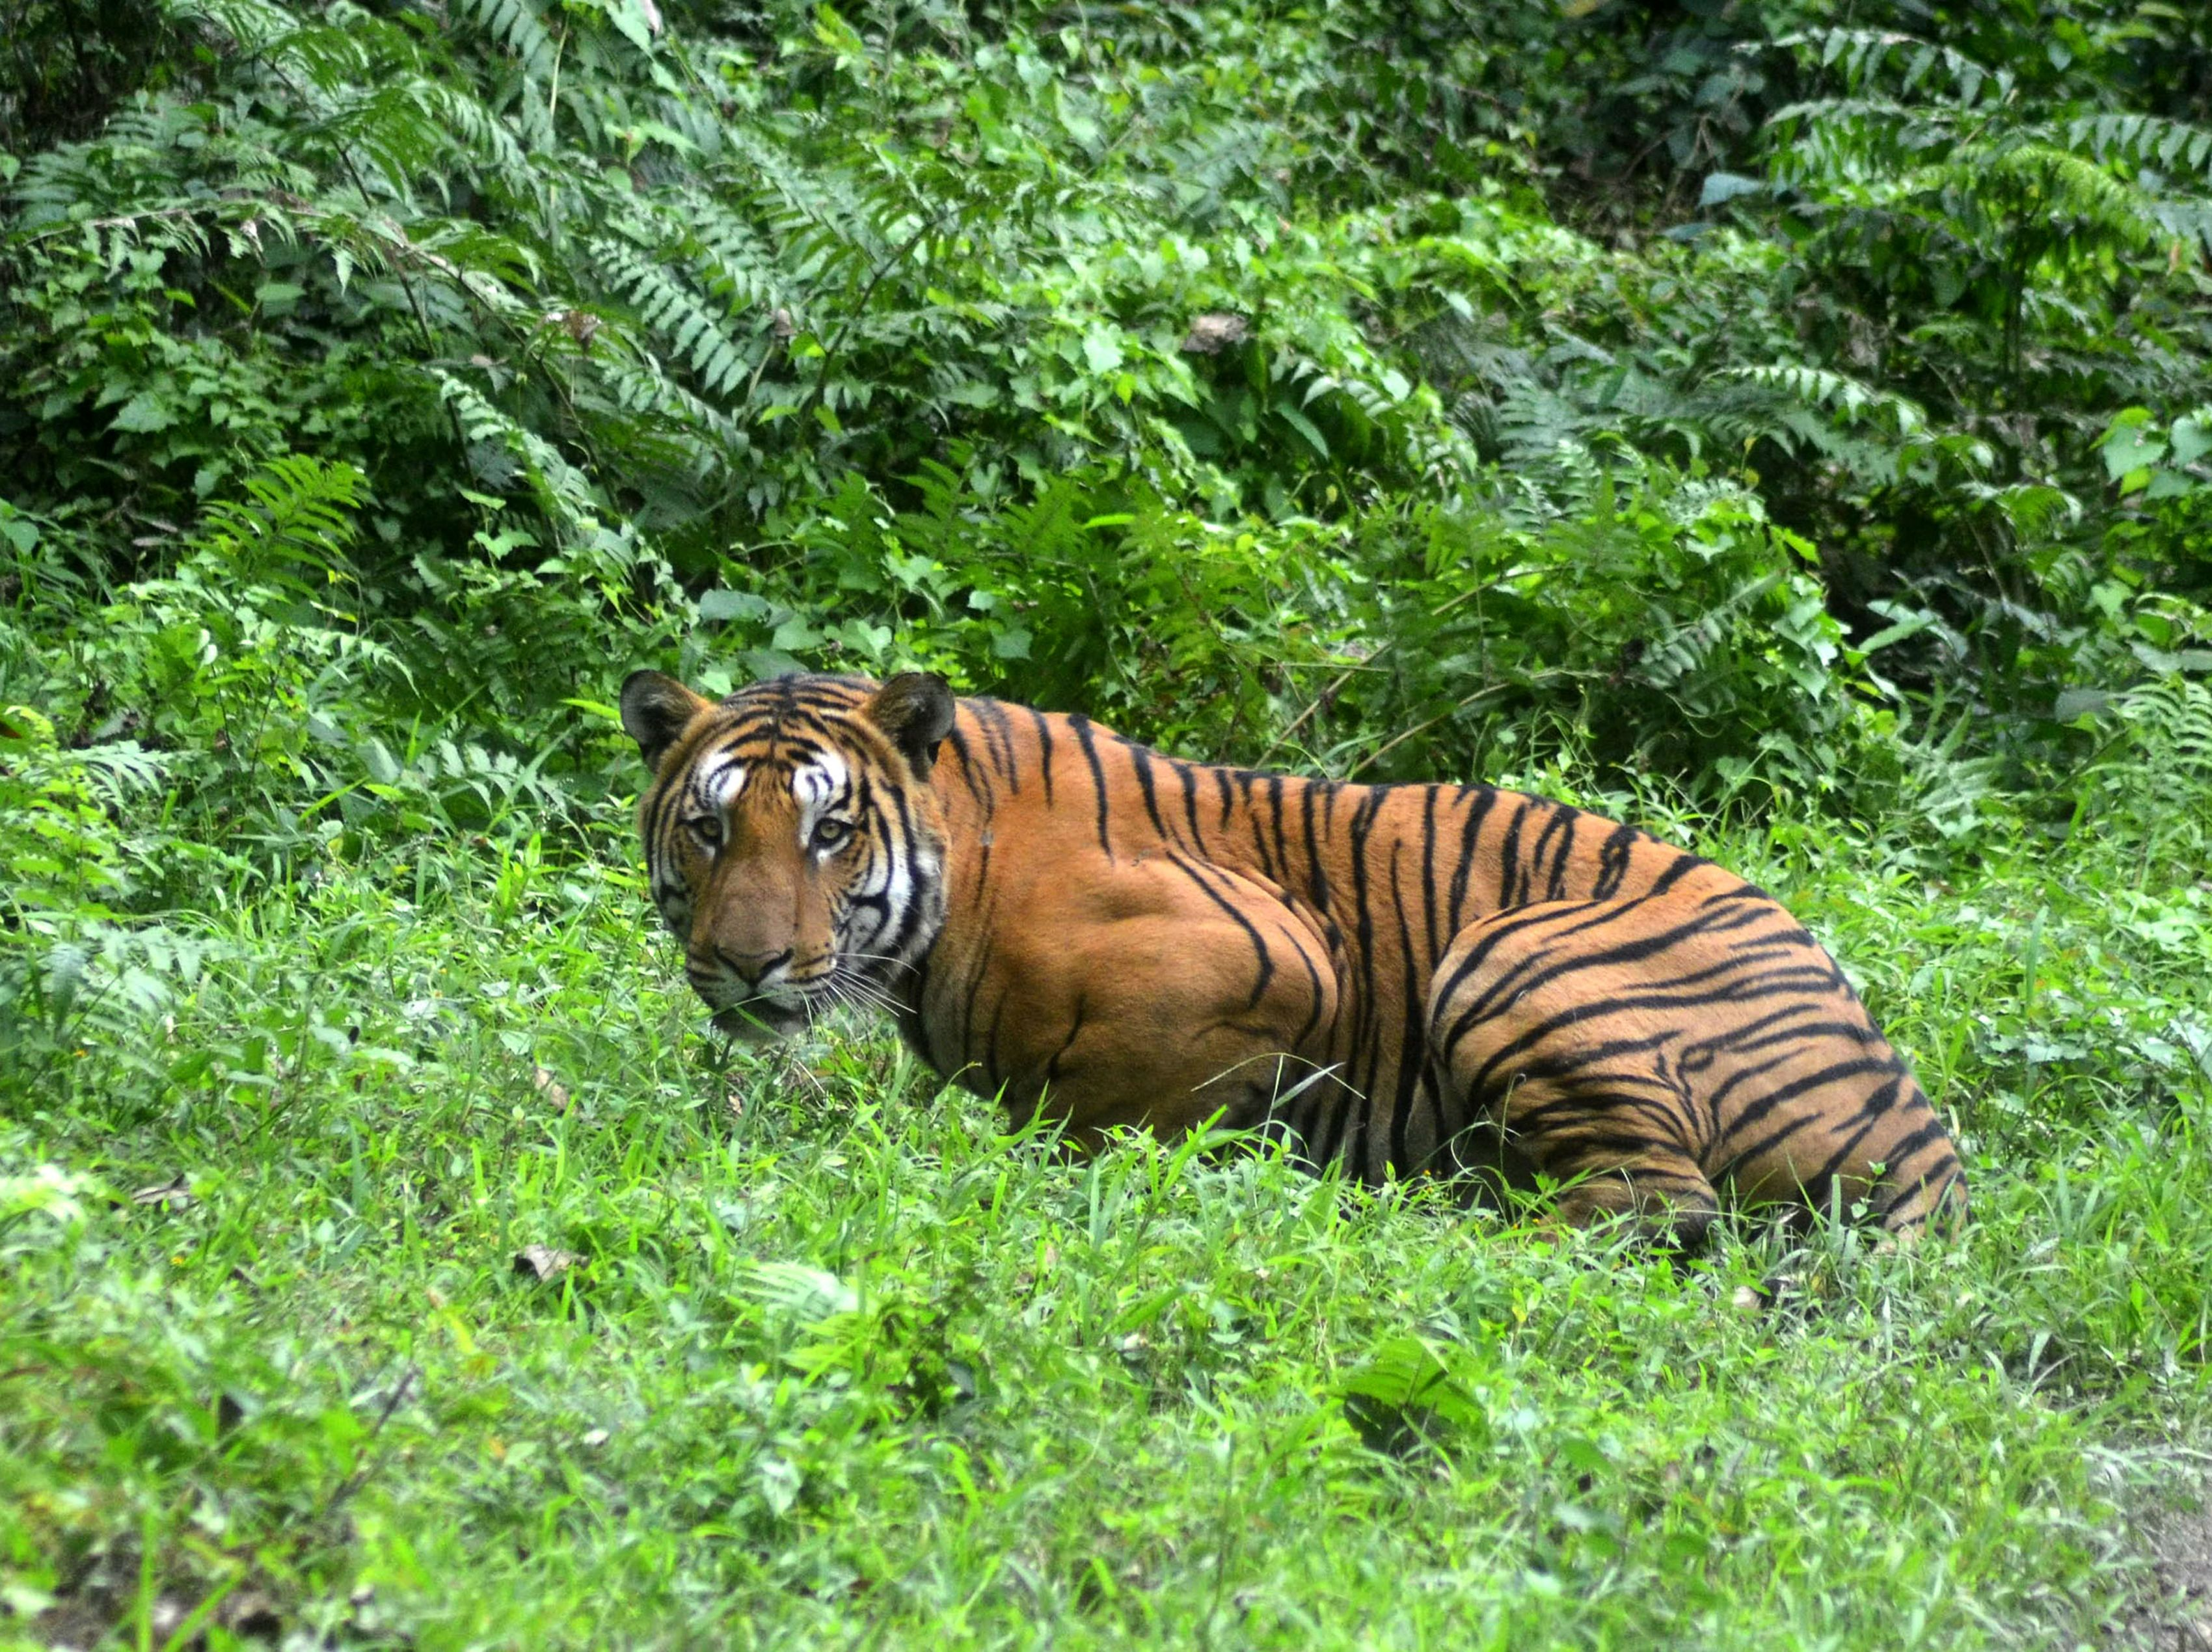 Tigers in India: 5 best places to see one | CNN Travel